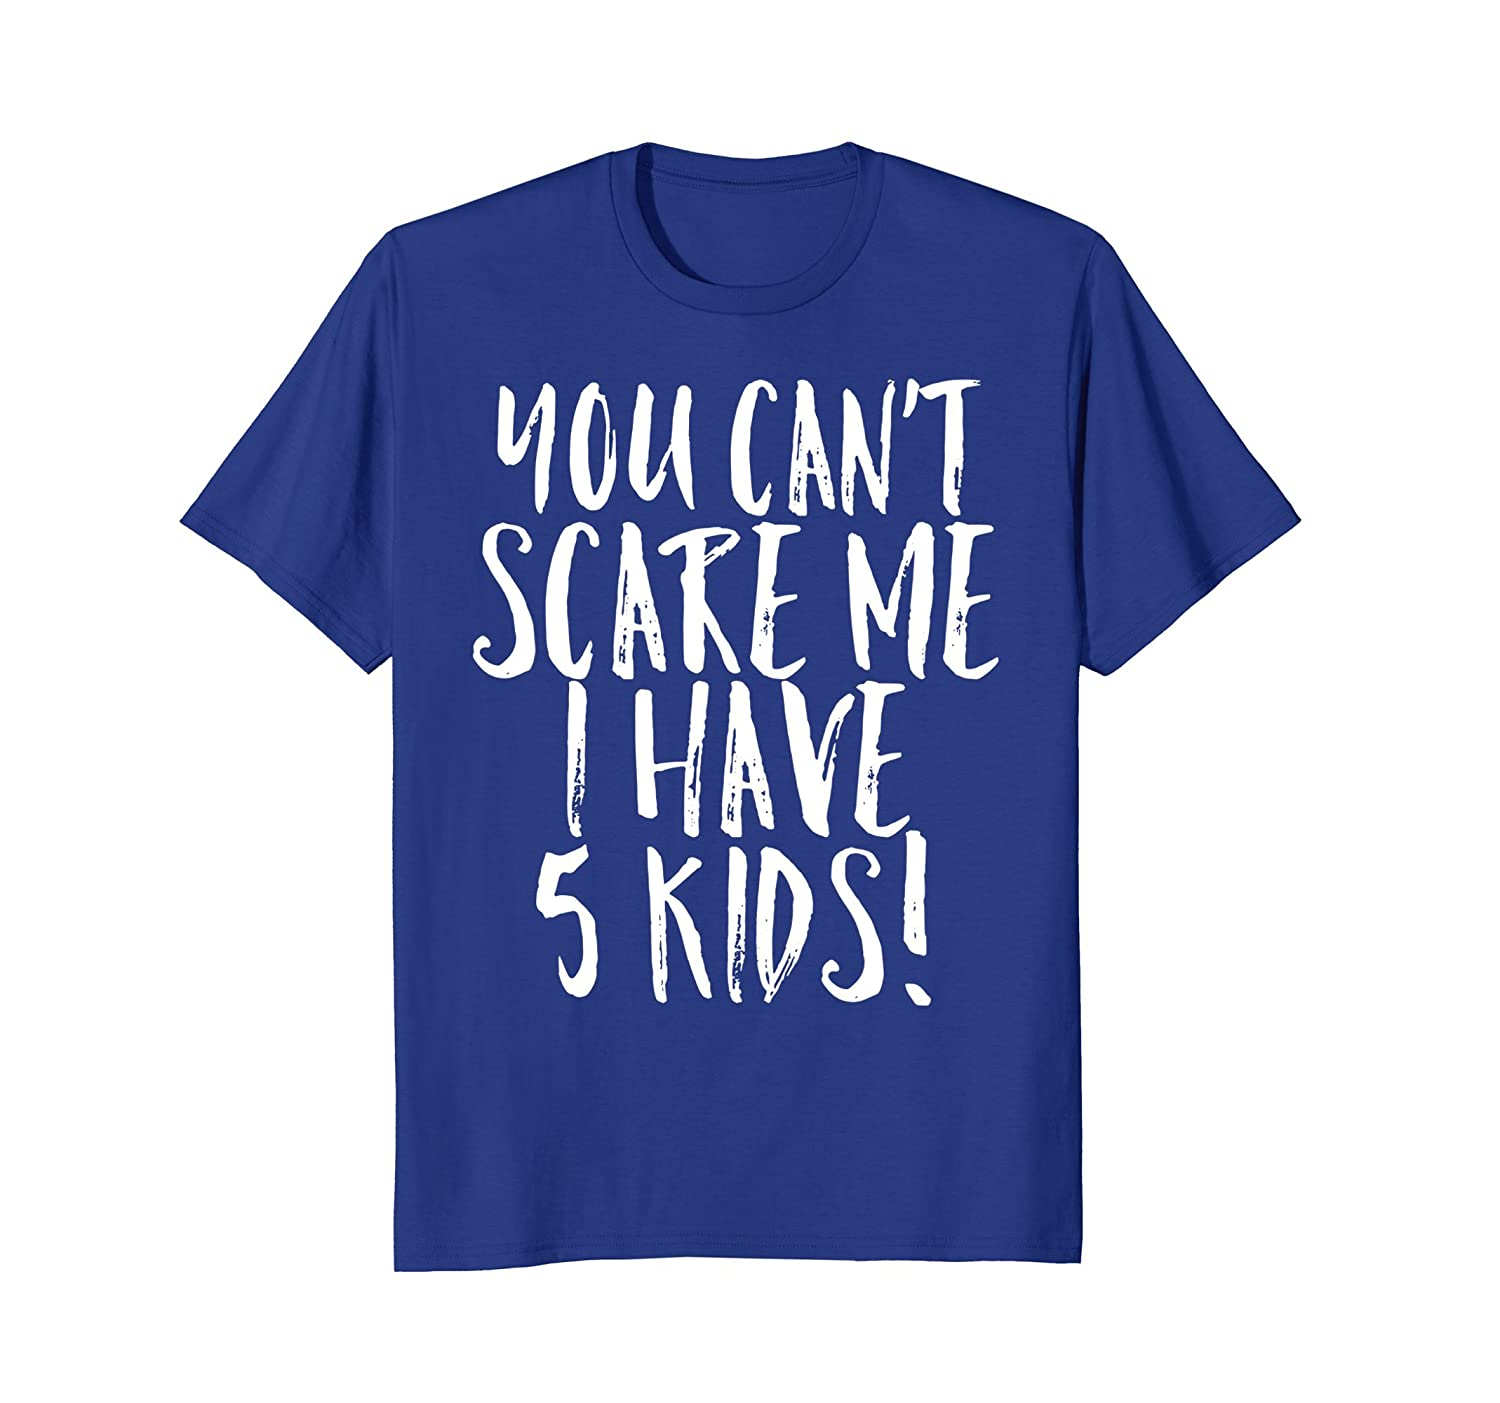 d7bd81d3 You Can't Scare Me I Have 5 Kids Funny Mom Dad Costume Shirt-mt ...